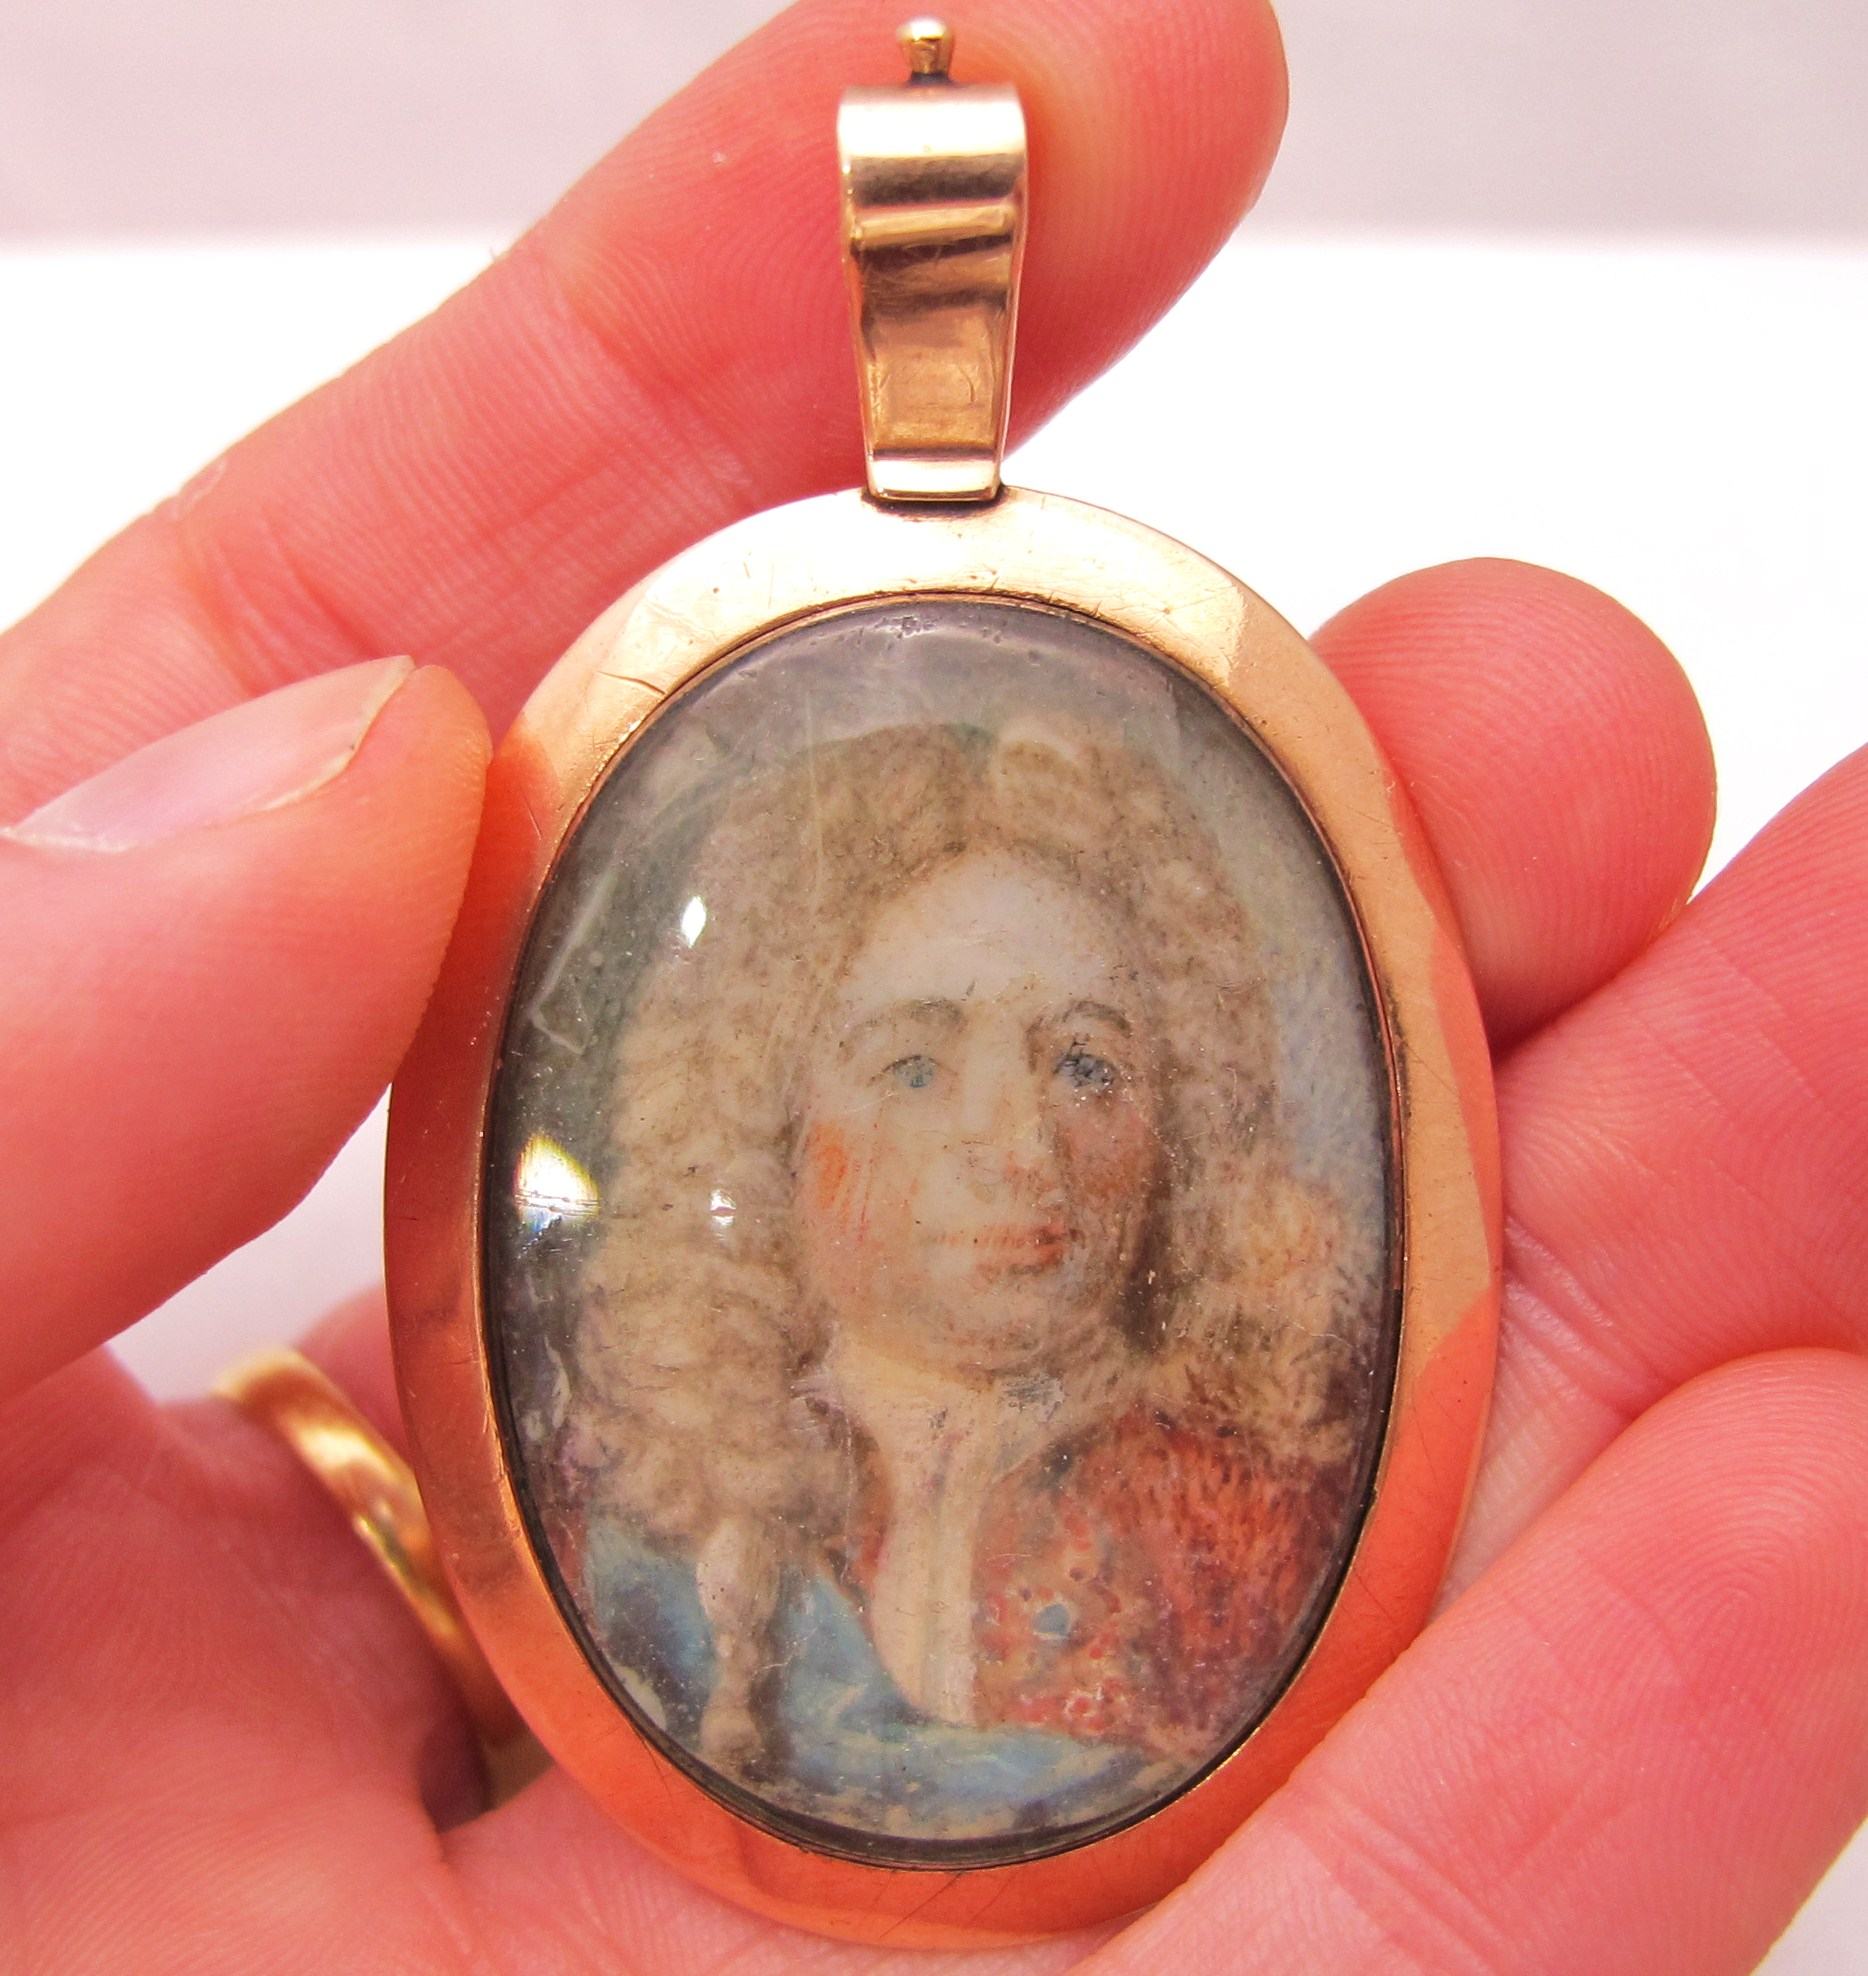 12k gold, painted miniature. Painting c 1600s, frame c. 1700s